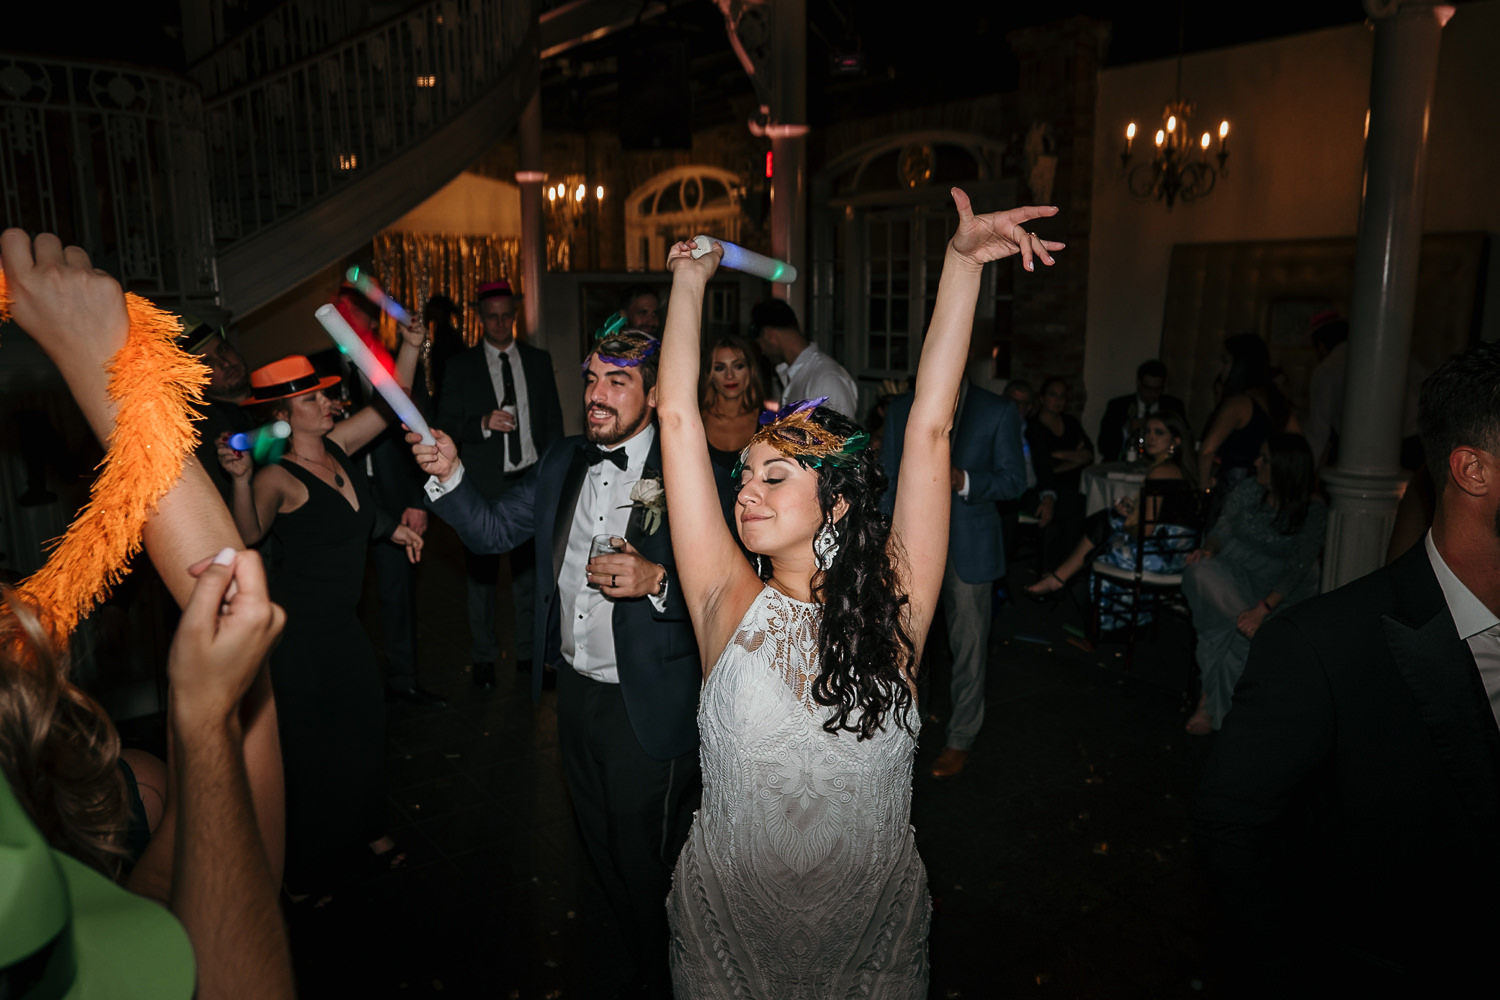 newlyweds together bride dancing hands in air masquerade mask on head